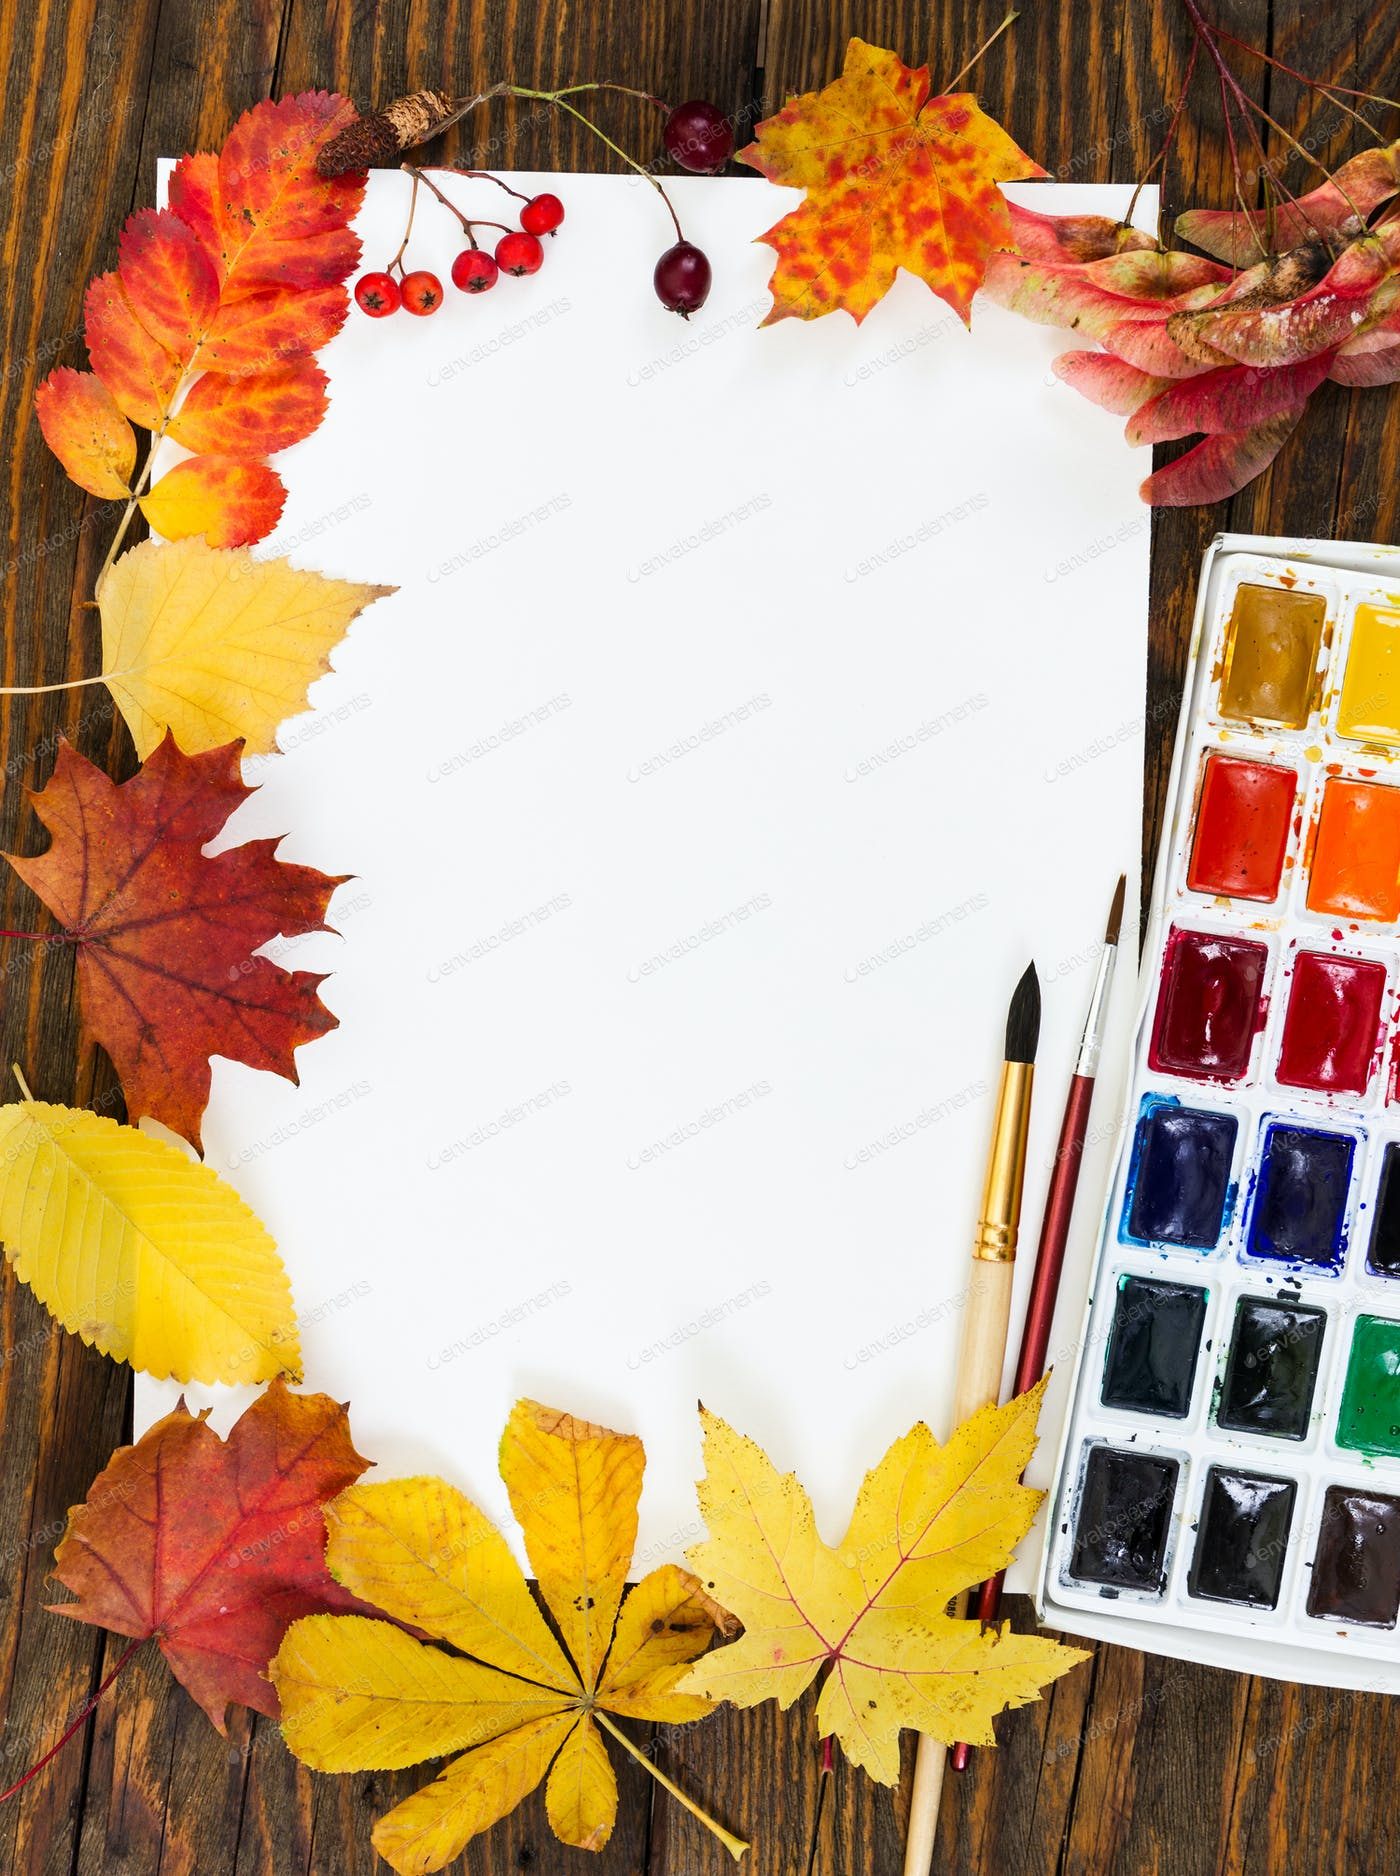 Workplace Of Artist Sheet Paper Paints Brushes And Autumn Photo By Nataliia Pyzhova On Envato Elements